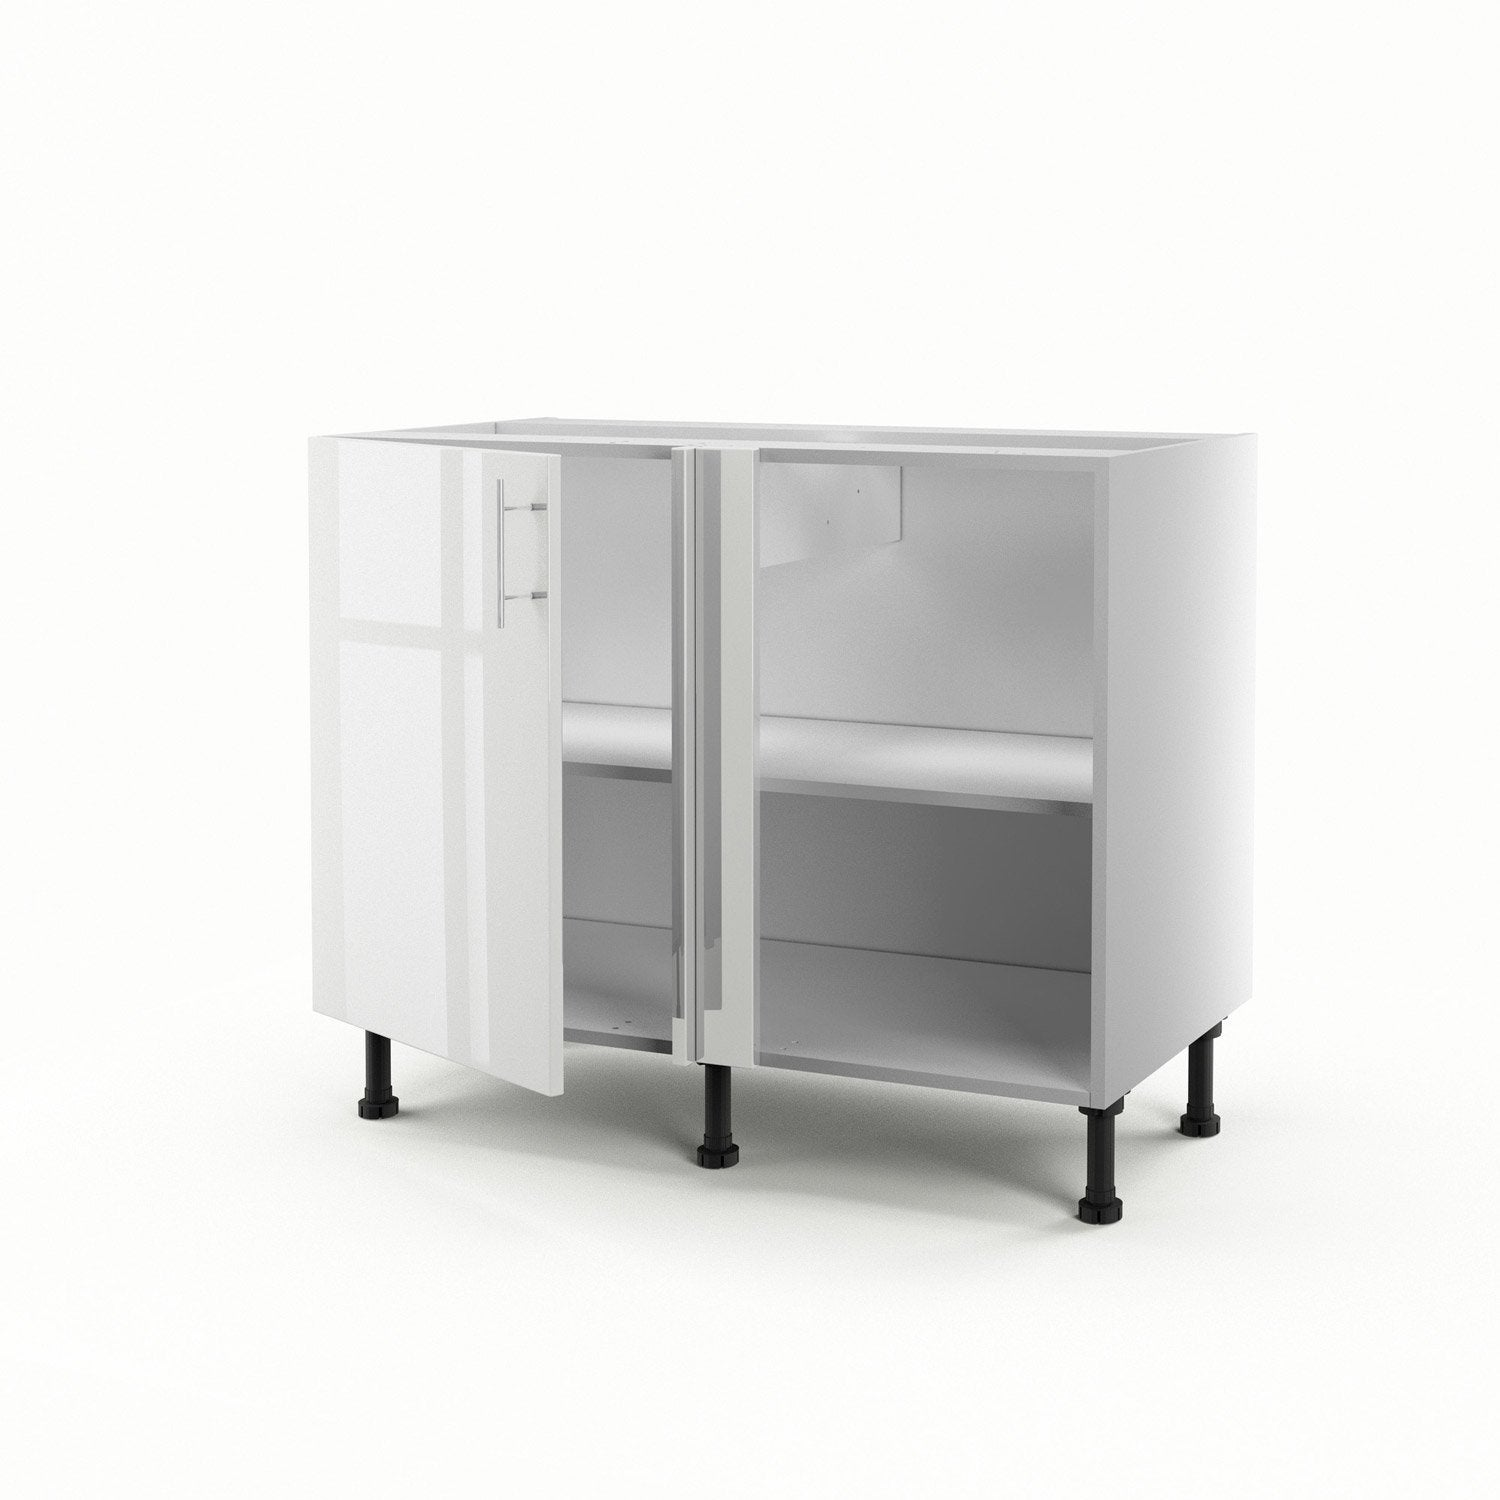 meuble de cuisine bas d 39 angle blanc 1 porte rio x l. Black Bedroom Furniture Sets. Home Design Ideas